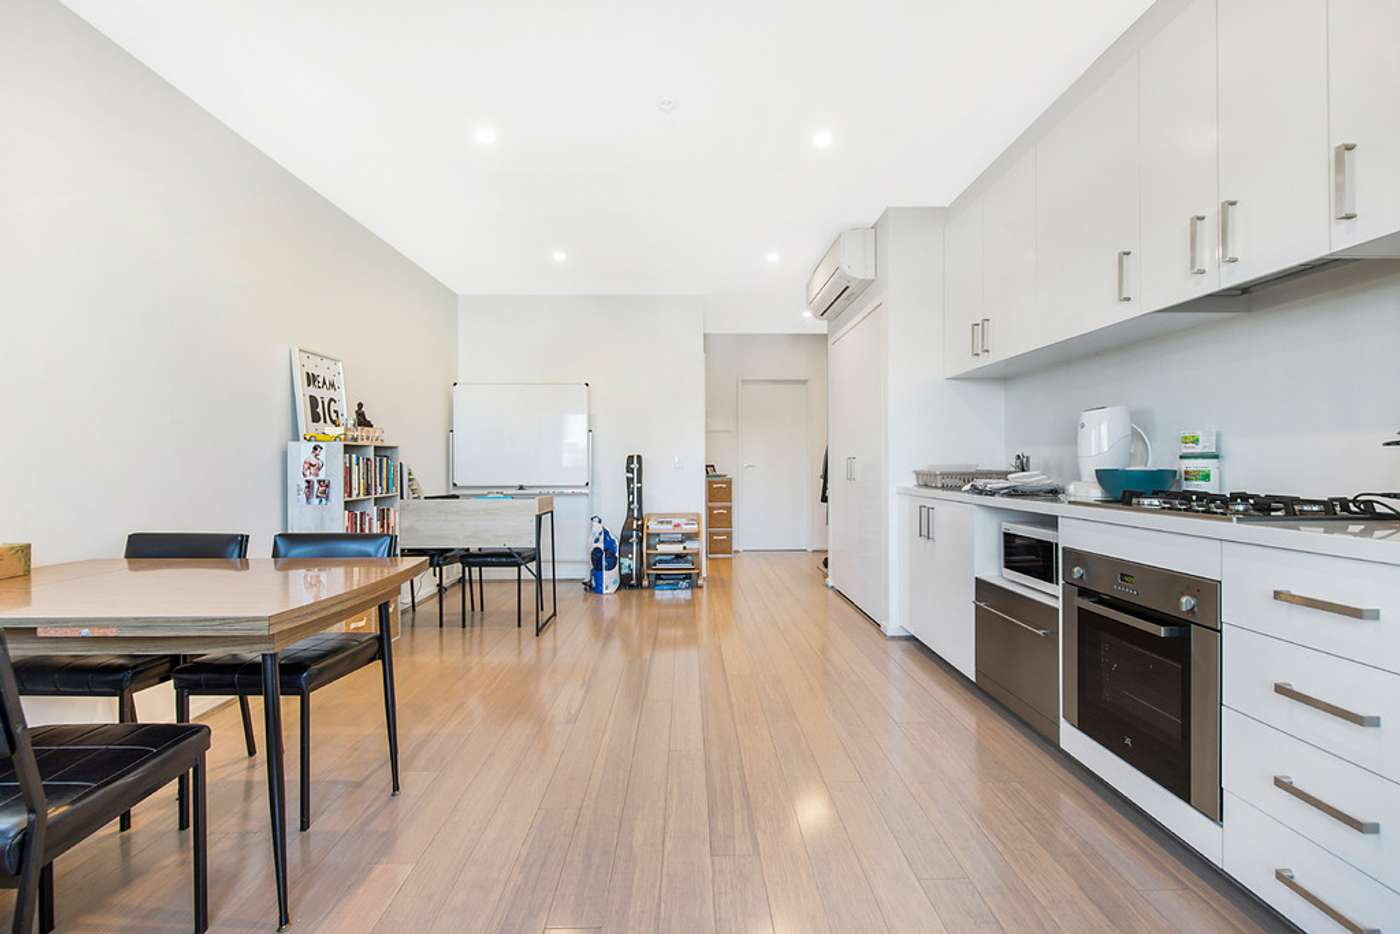 Main view of Homely apartment listing, 407/761 Station Street, Box Hill North VIC 3129